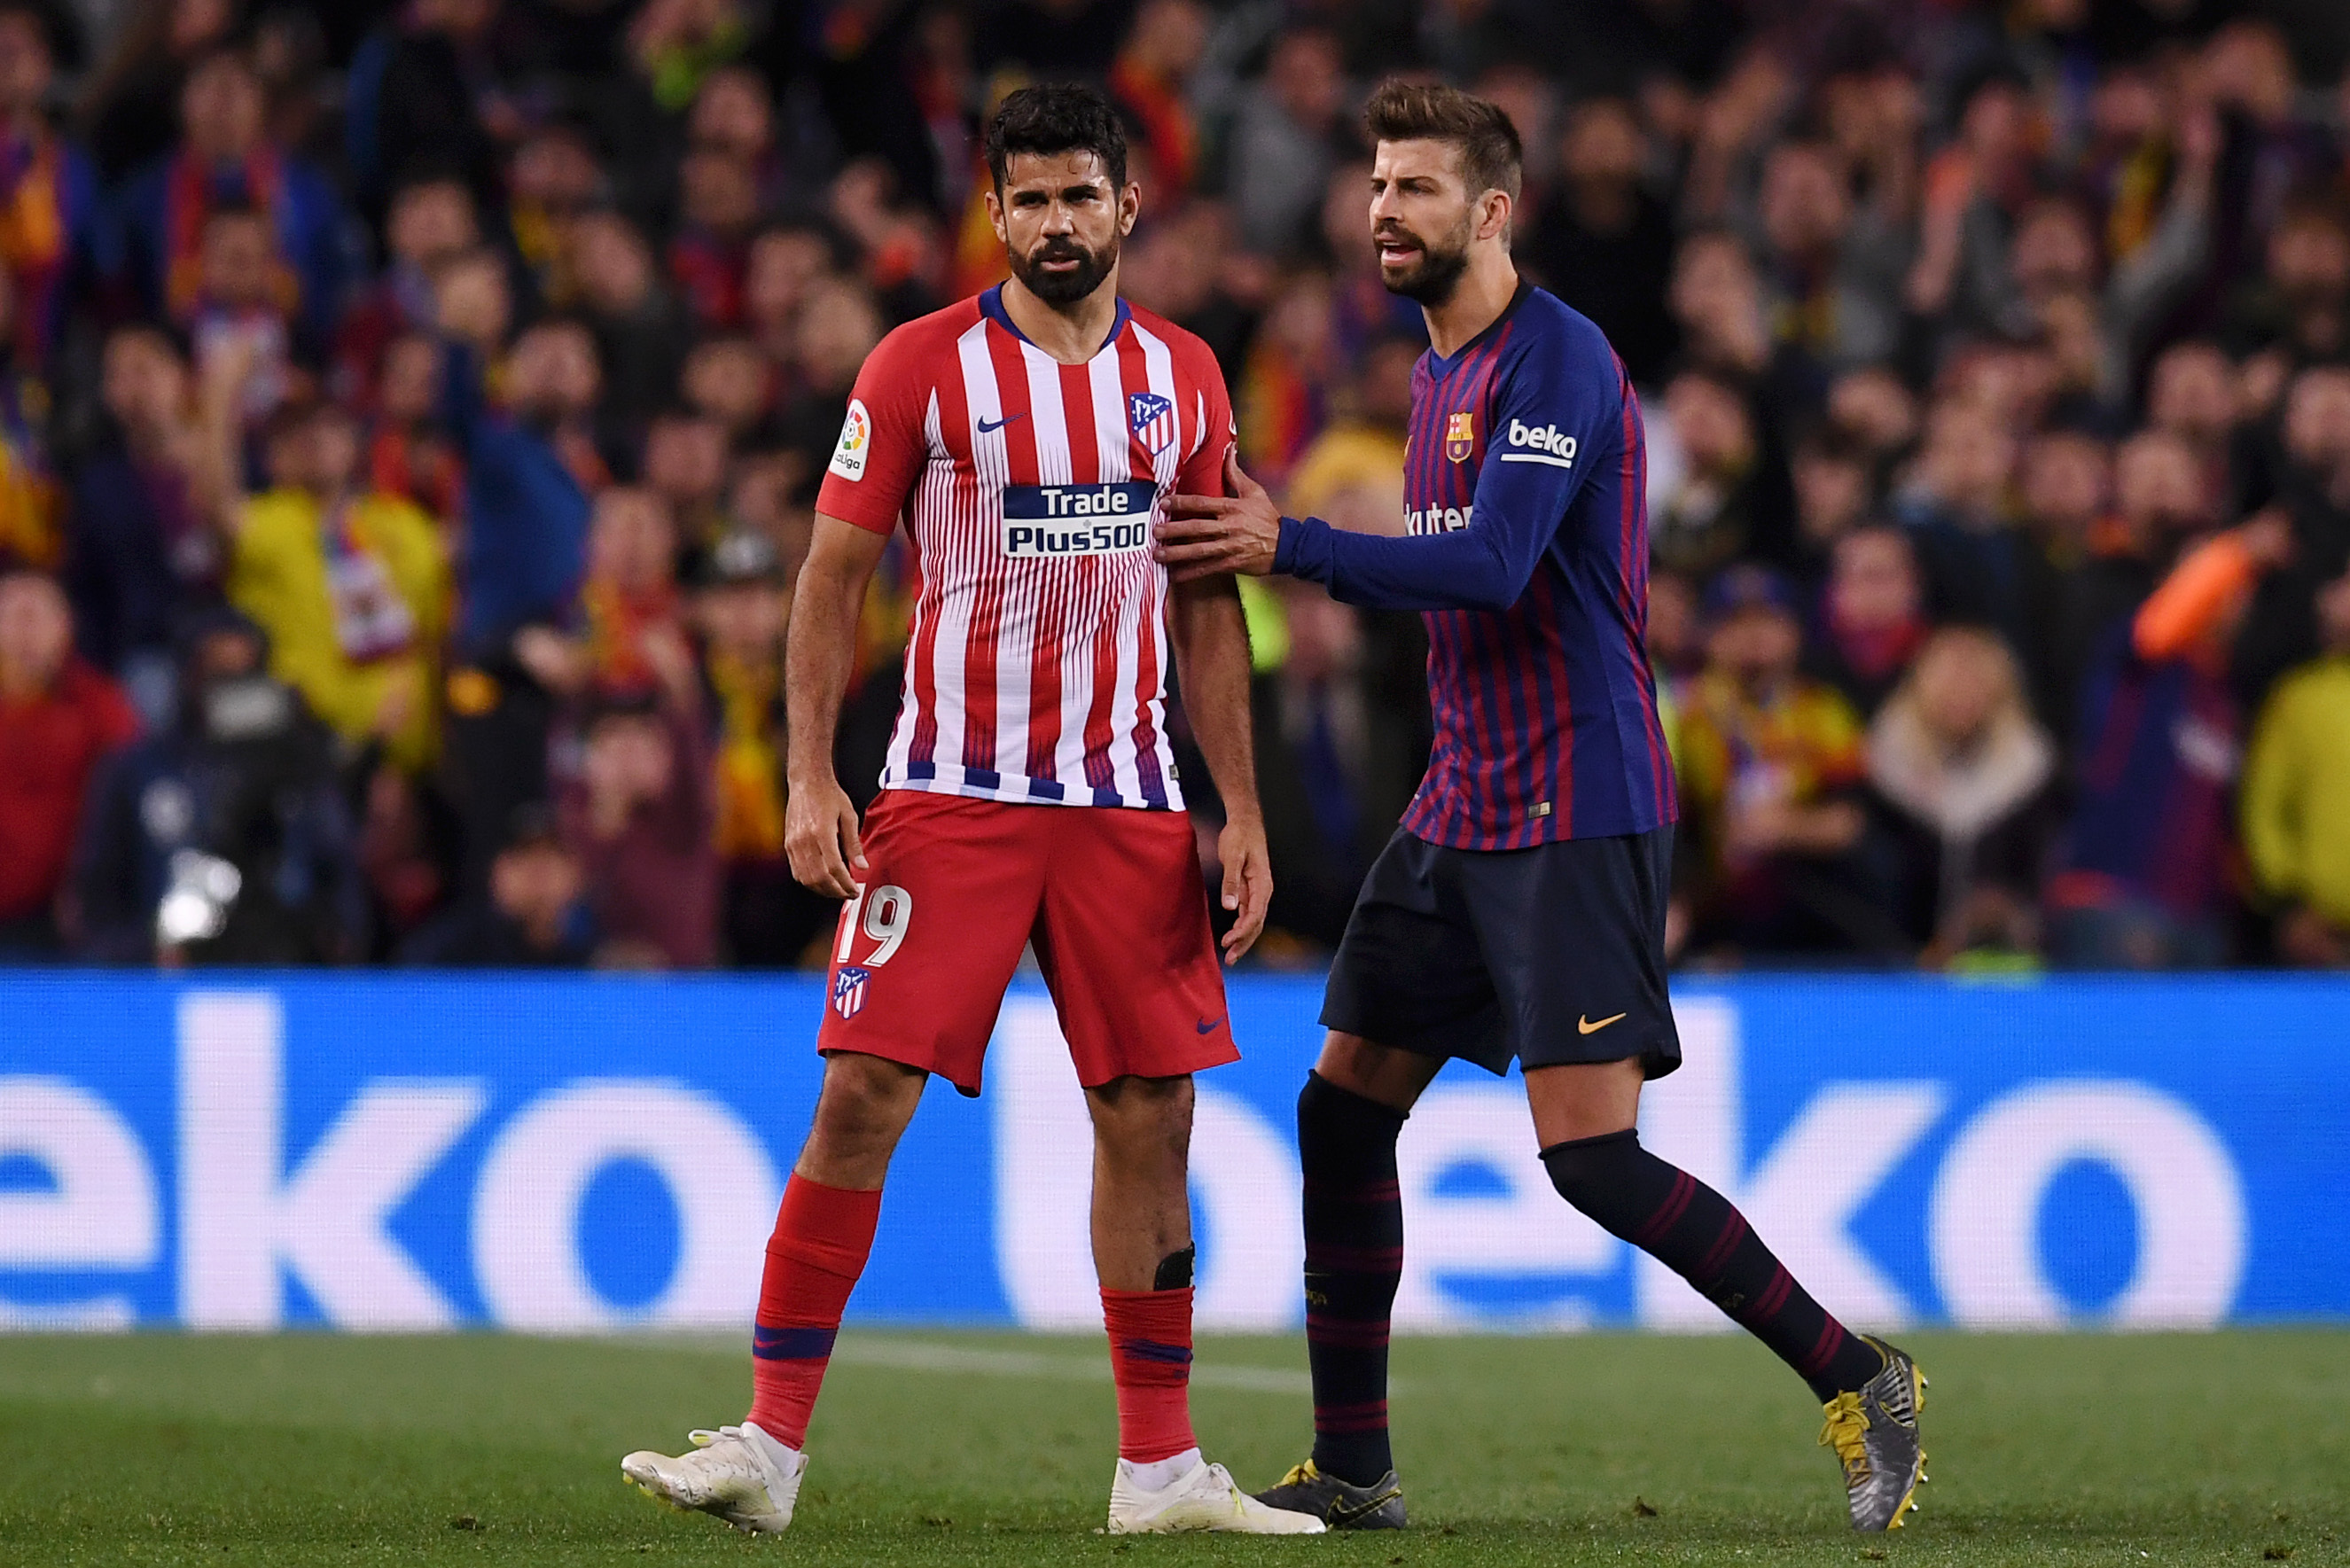 Diego Costa Reportedly Facing 8 Game Ban Following Red Card Vs Barcelona Bleacher Report Latest News Videos And Highlights